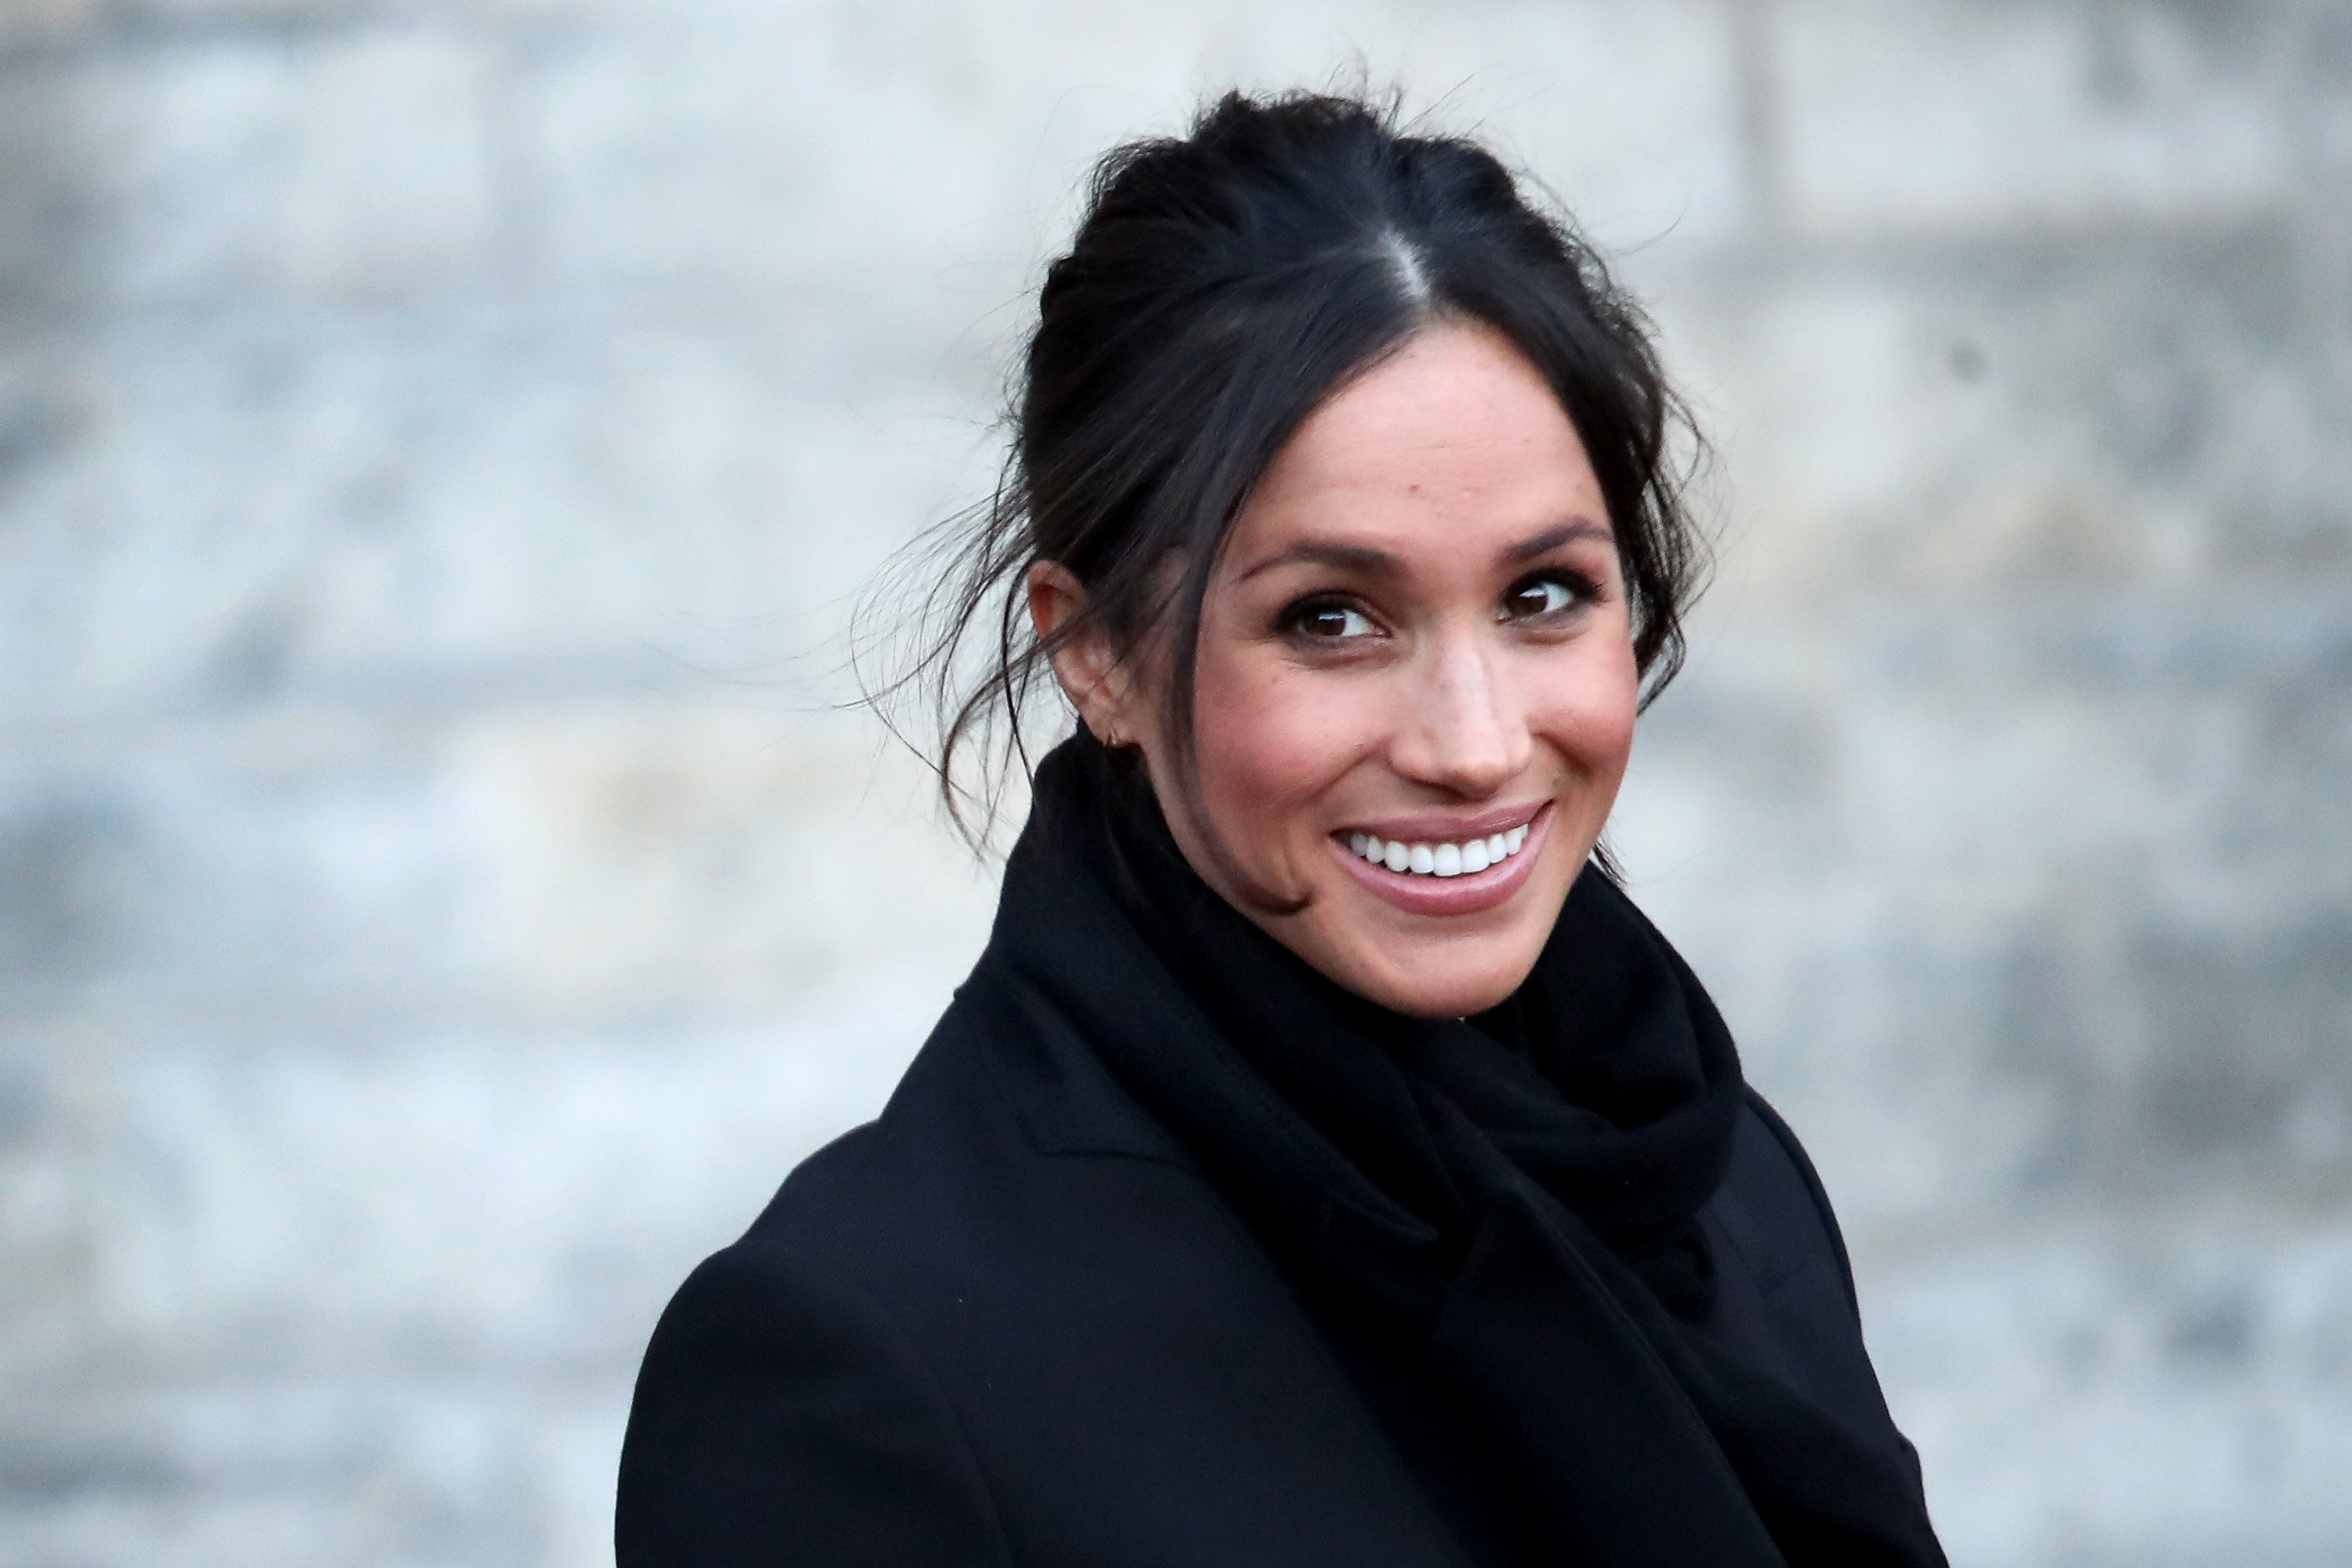 Image Credits: Getty Images / Chris Jackson   Meghan Markle departs from a walkabout at Cardiff Castle on January 18, 2018 in Cardiff, Wales.